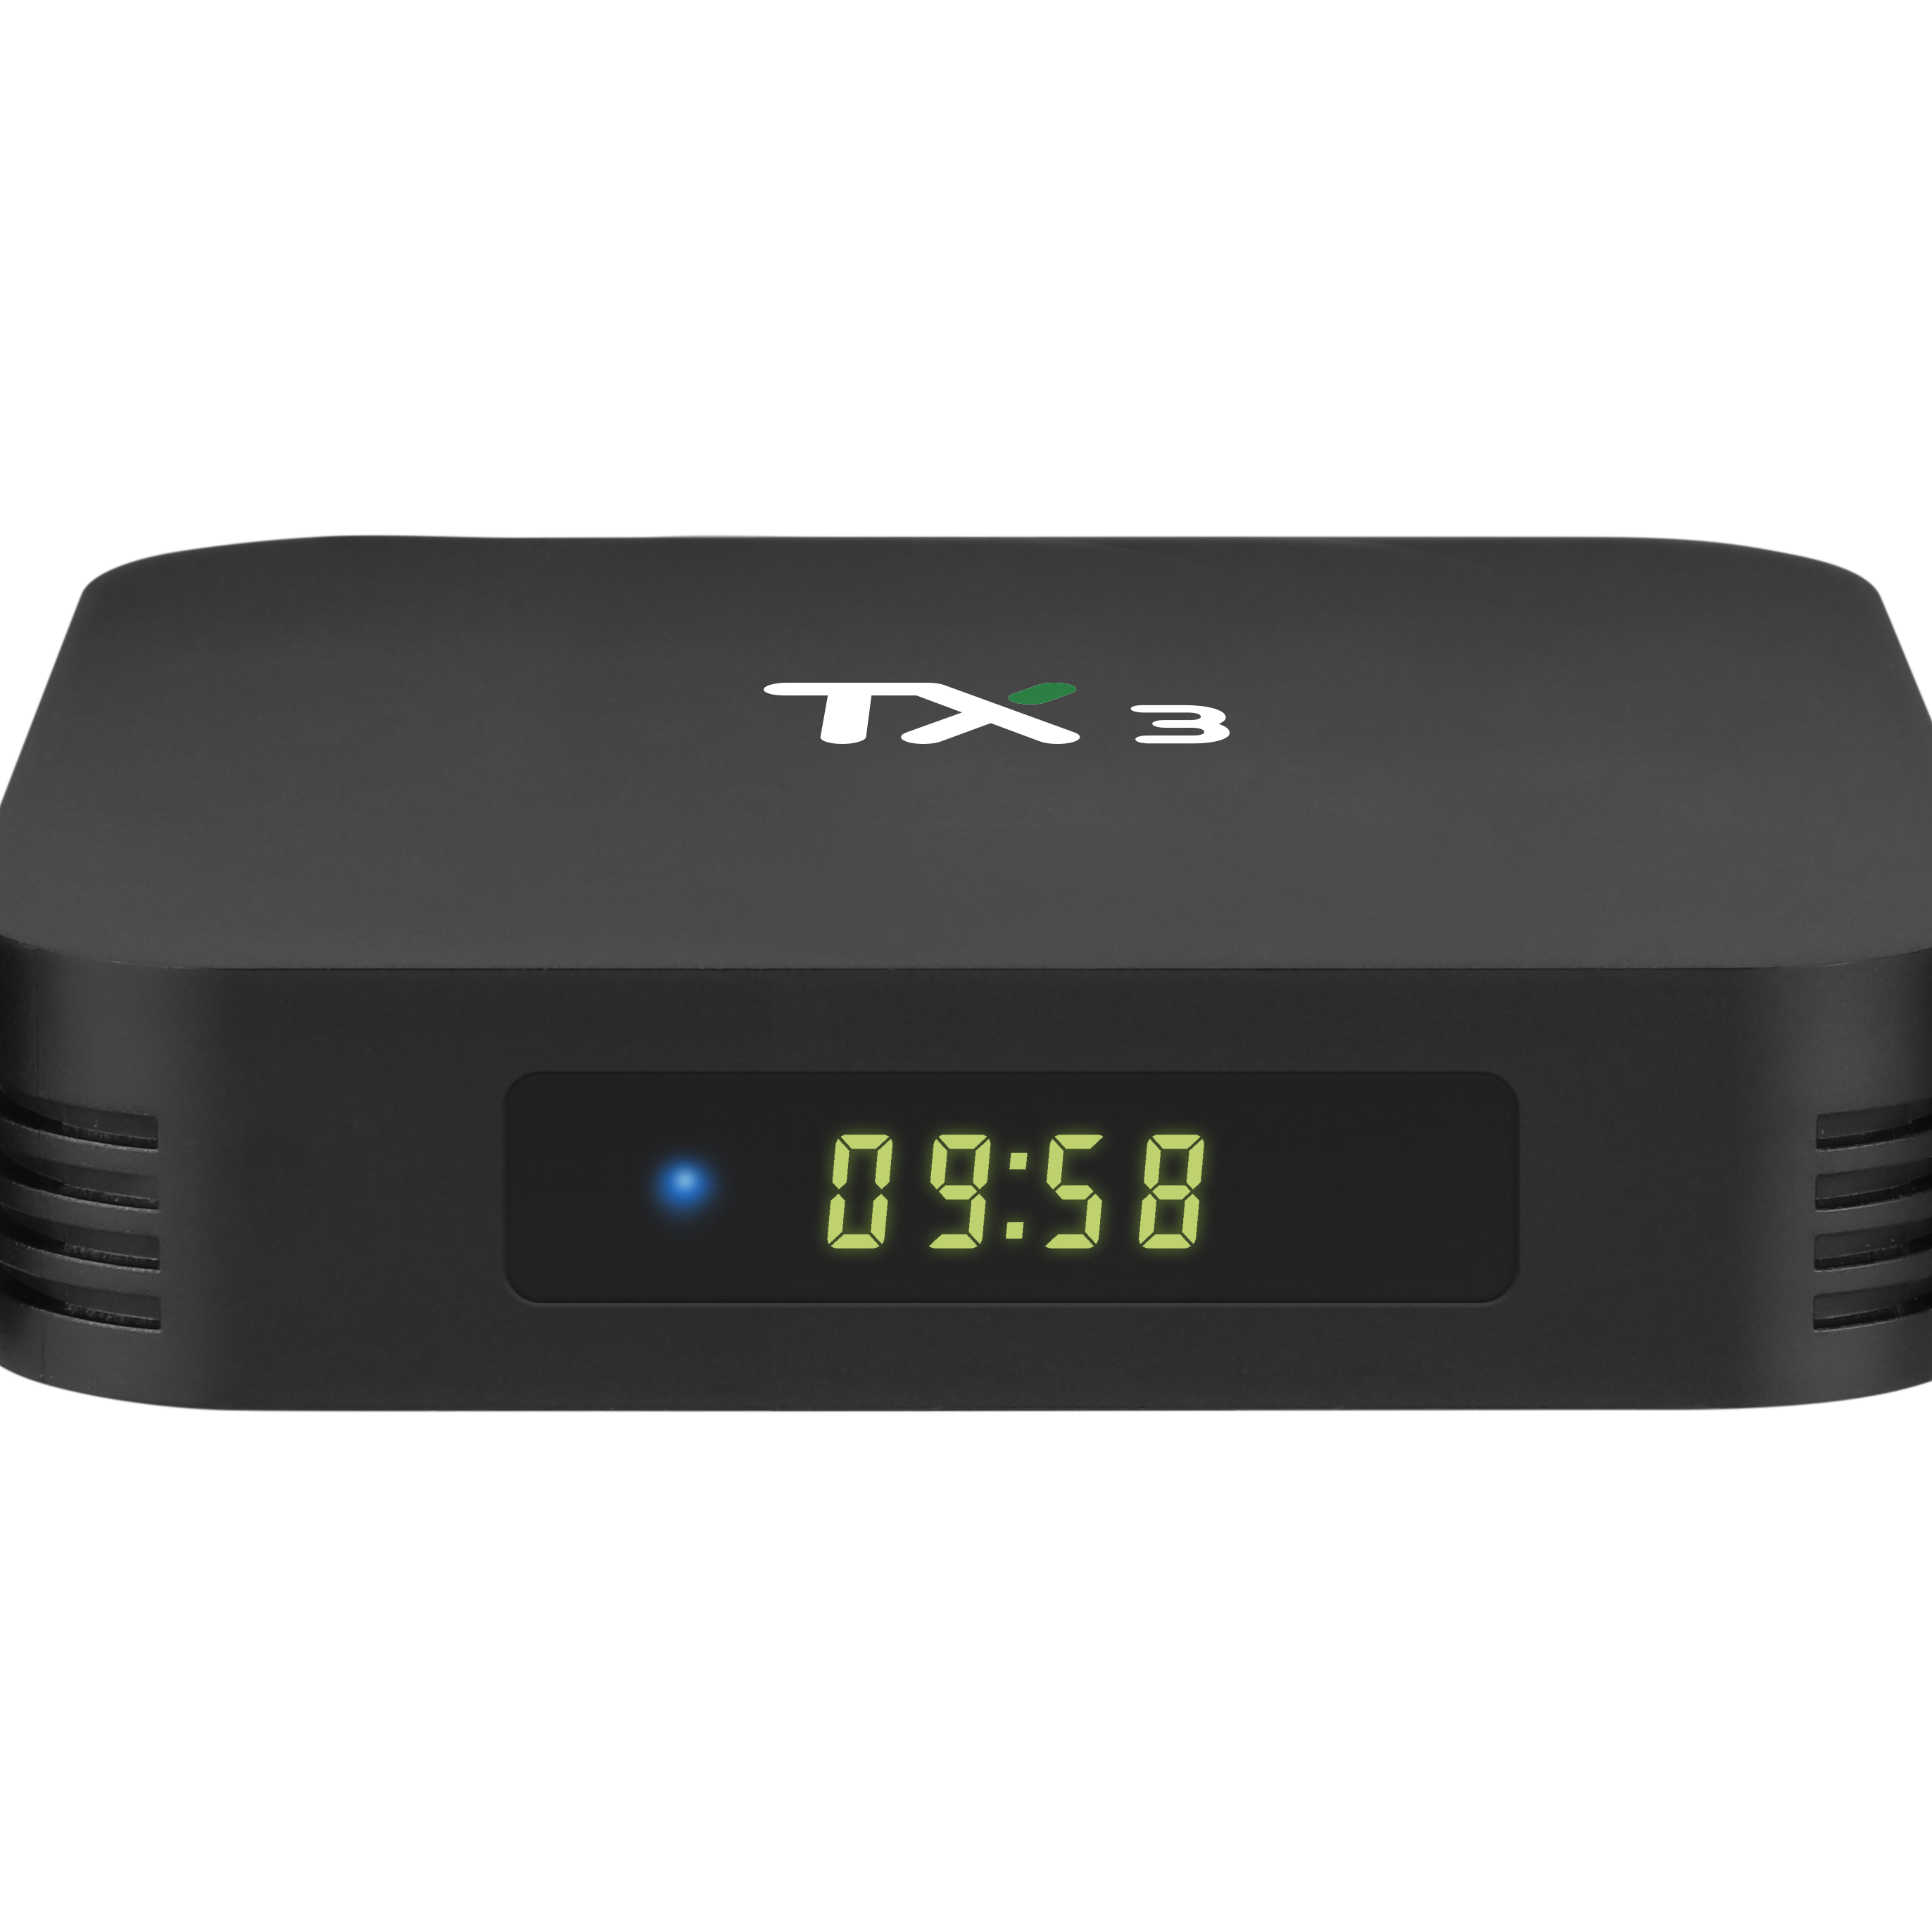 Nieuwe producten aankomst Amlogic S905X3 TX3 4K tv box RAM 4GB ROM 32 GB/64 GB Android 9.0 Smart Set Top Box